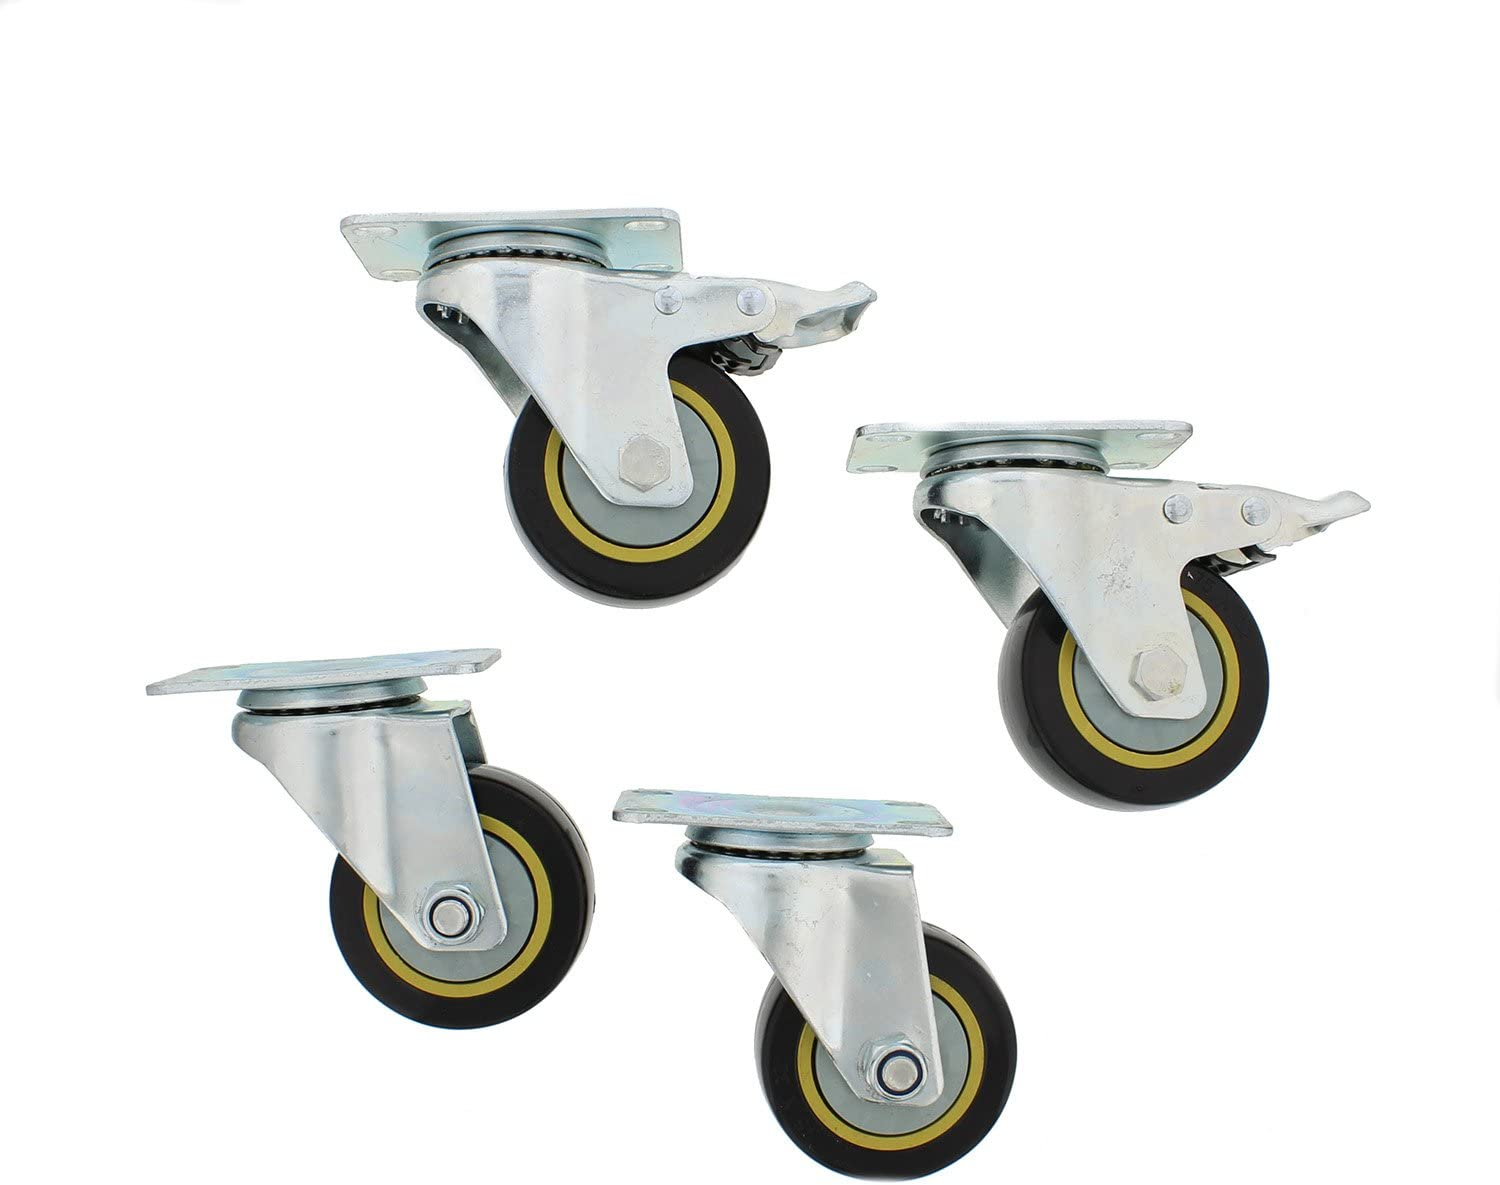 ABN Caster Wheel, 3in, Set of 4 – Heavy-Duty Swivel Stem Locking Casters with Hard Rubber Wheels for Furniture